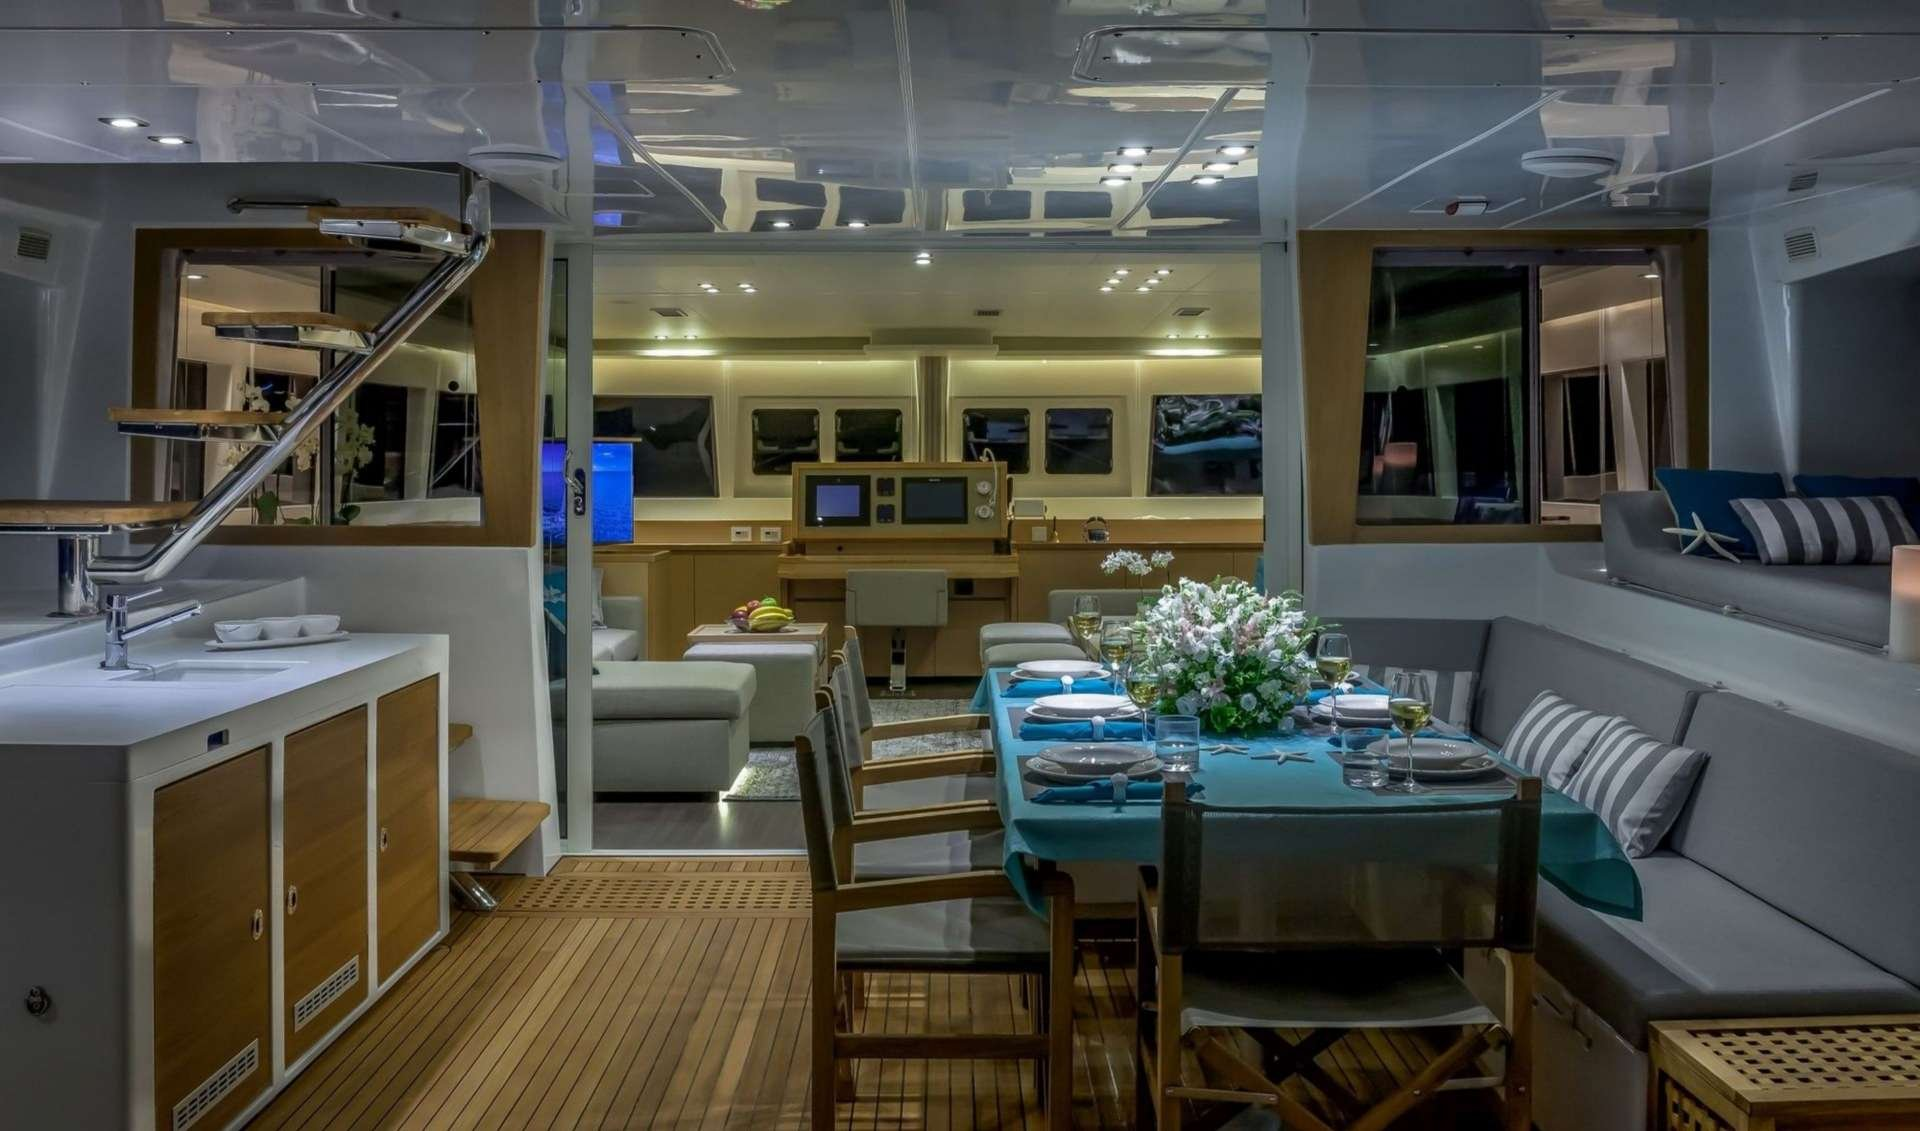 Catamaran Yacht 'OCEAN VIEW' Alfresco dining, 6 PAX, 2 Crew, 62.00 Ft, 18.00 Meters, Built 2014, Lagoon, Refit Year 2016